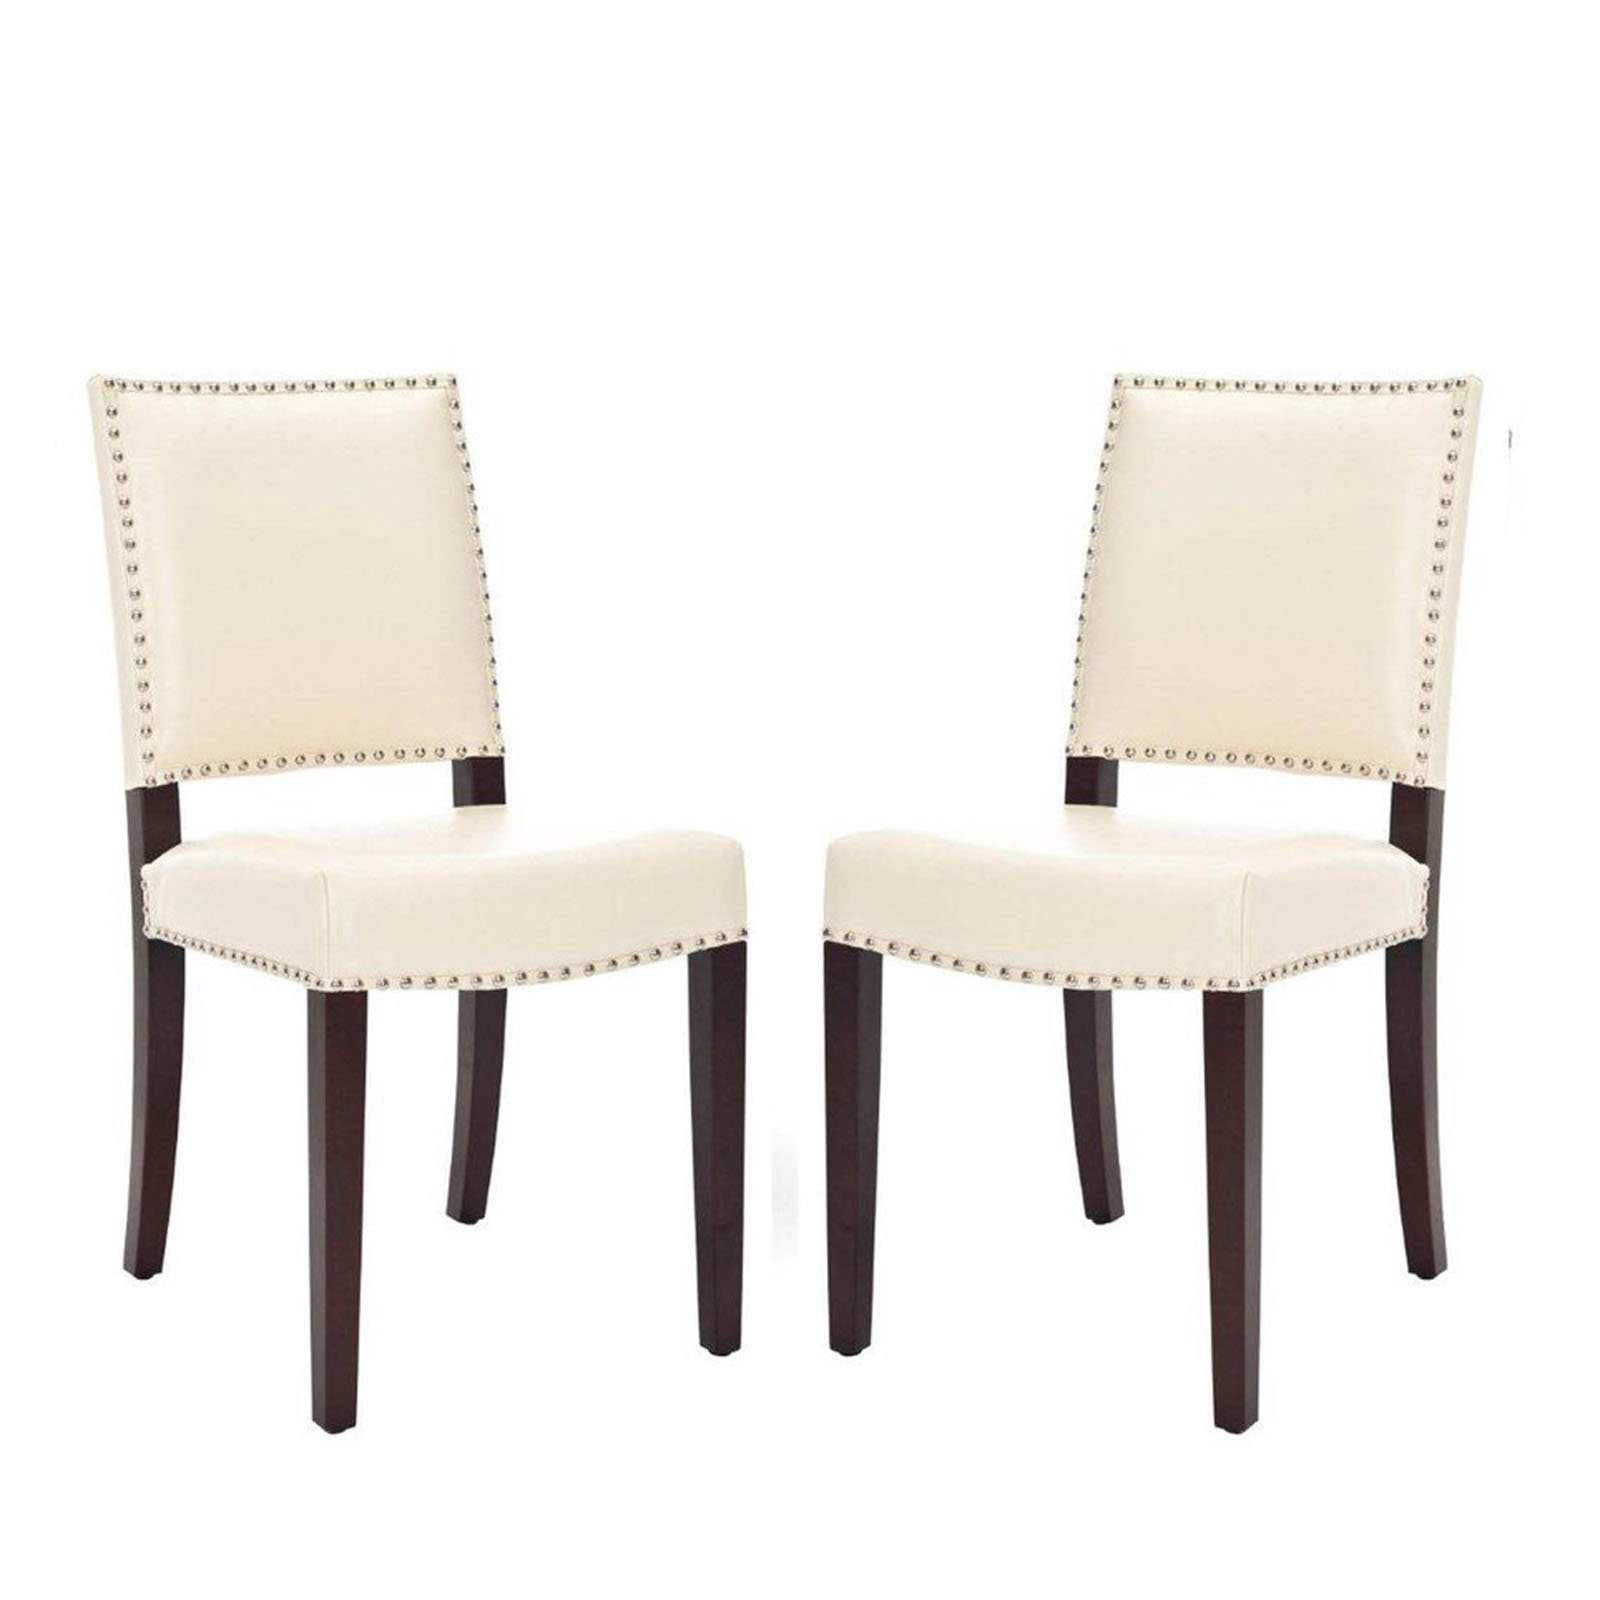 Safavieh Benjamin Cream Leather Nailhead Dining Side Chair - Set of 2